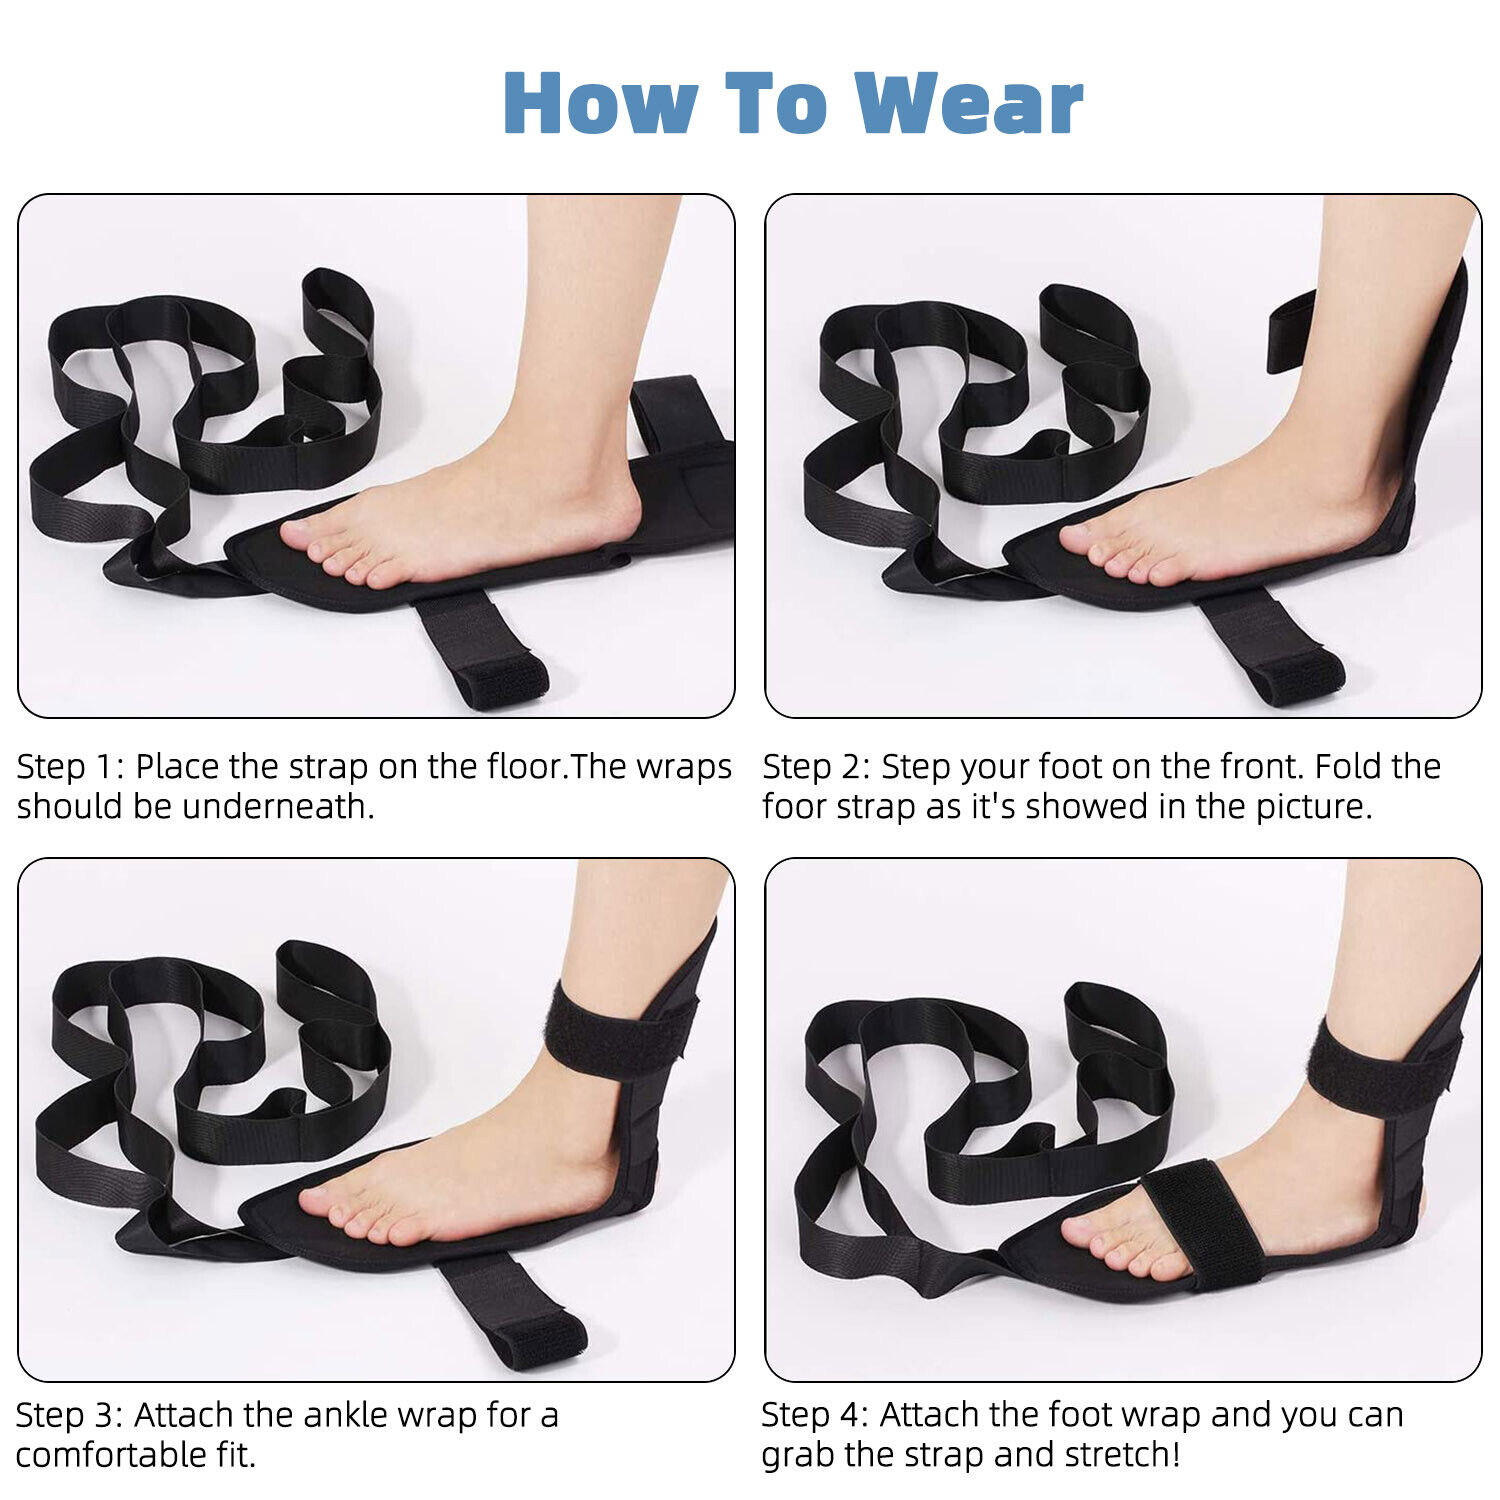 Yoga Ligament Stretching Belt Foot Drop Strap Leg Training Foot Correct Ankle US Fitness, Running & Yoga